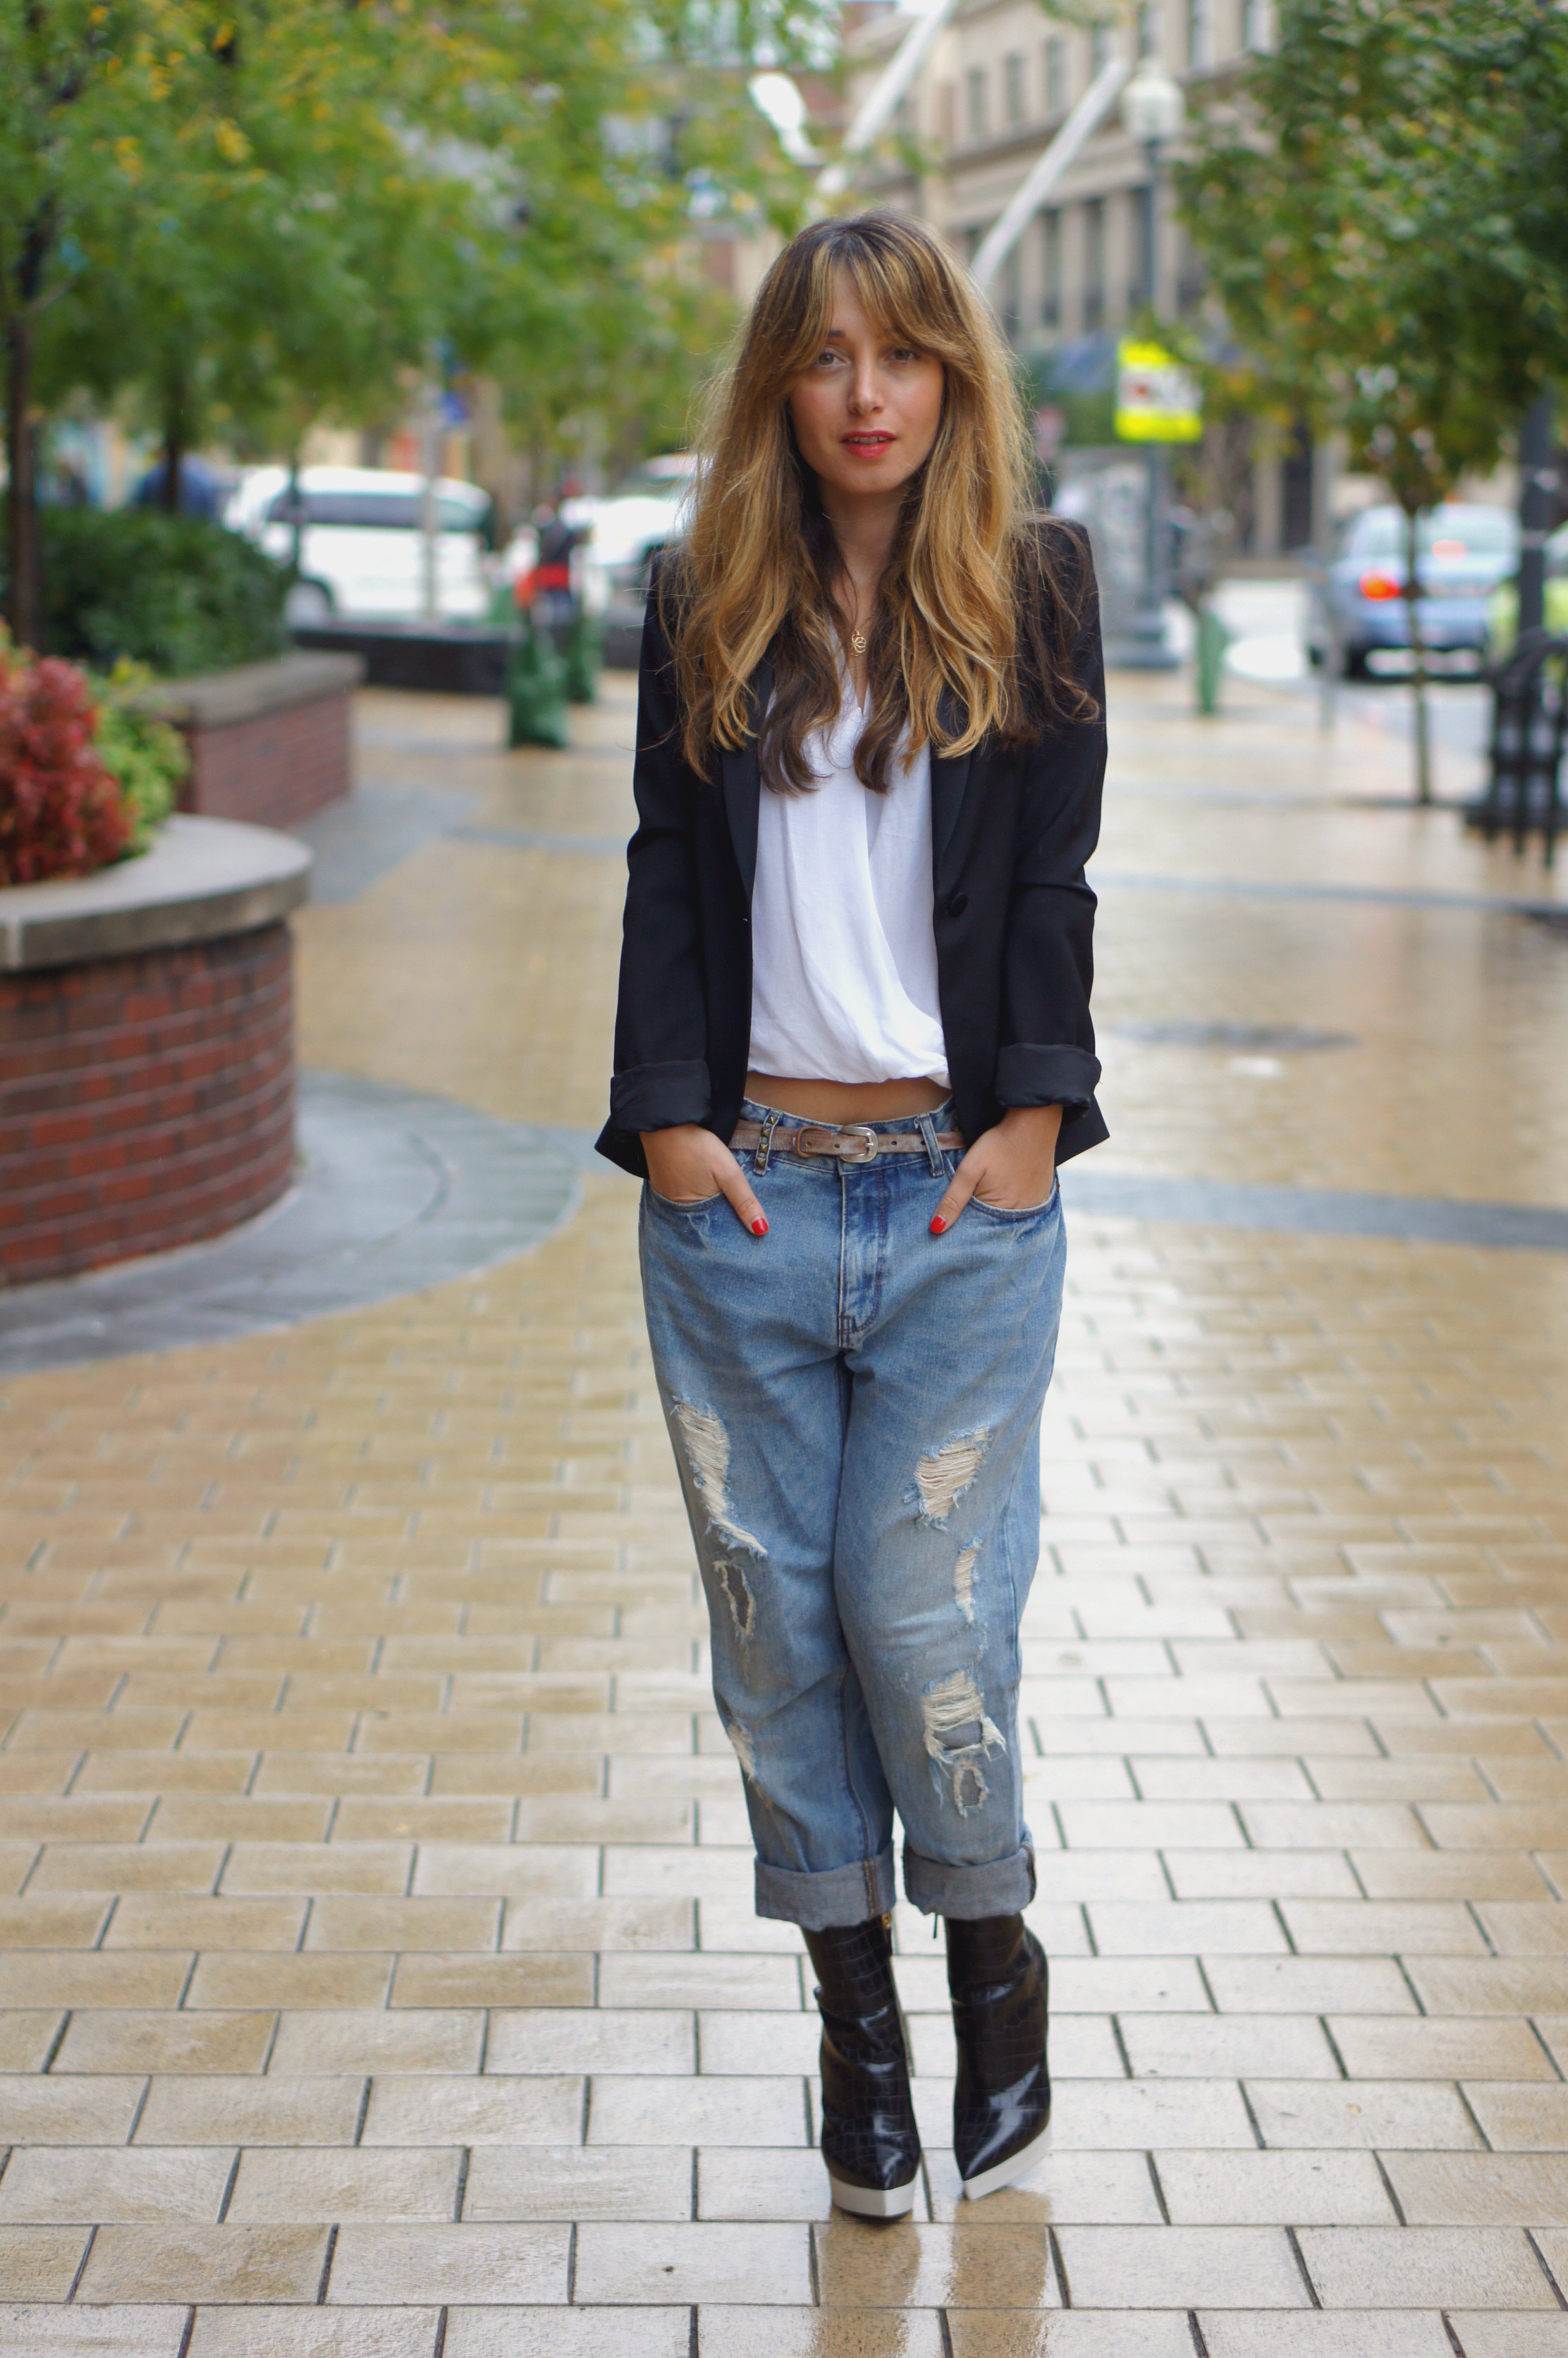 stella mccartney, boyfriend jeans, denim, white blouse, black blazer, black, white, black and white, rain, fall, fall style, zara, street style